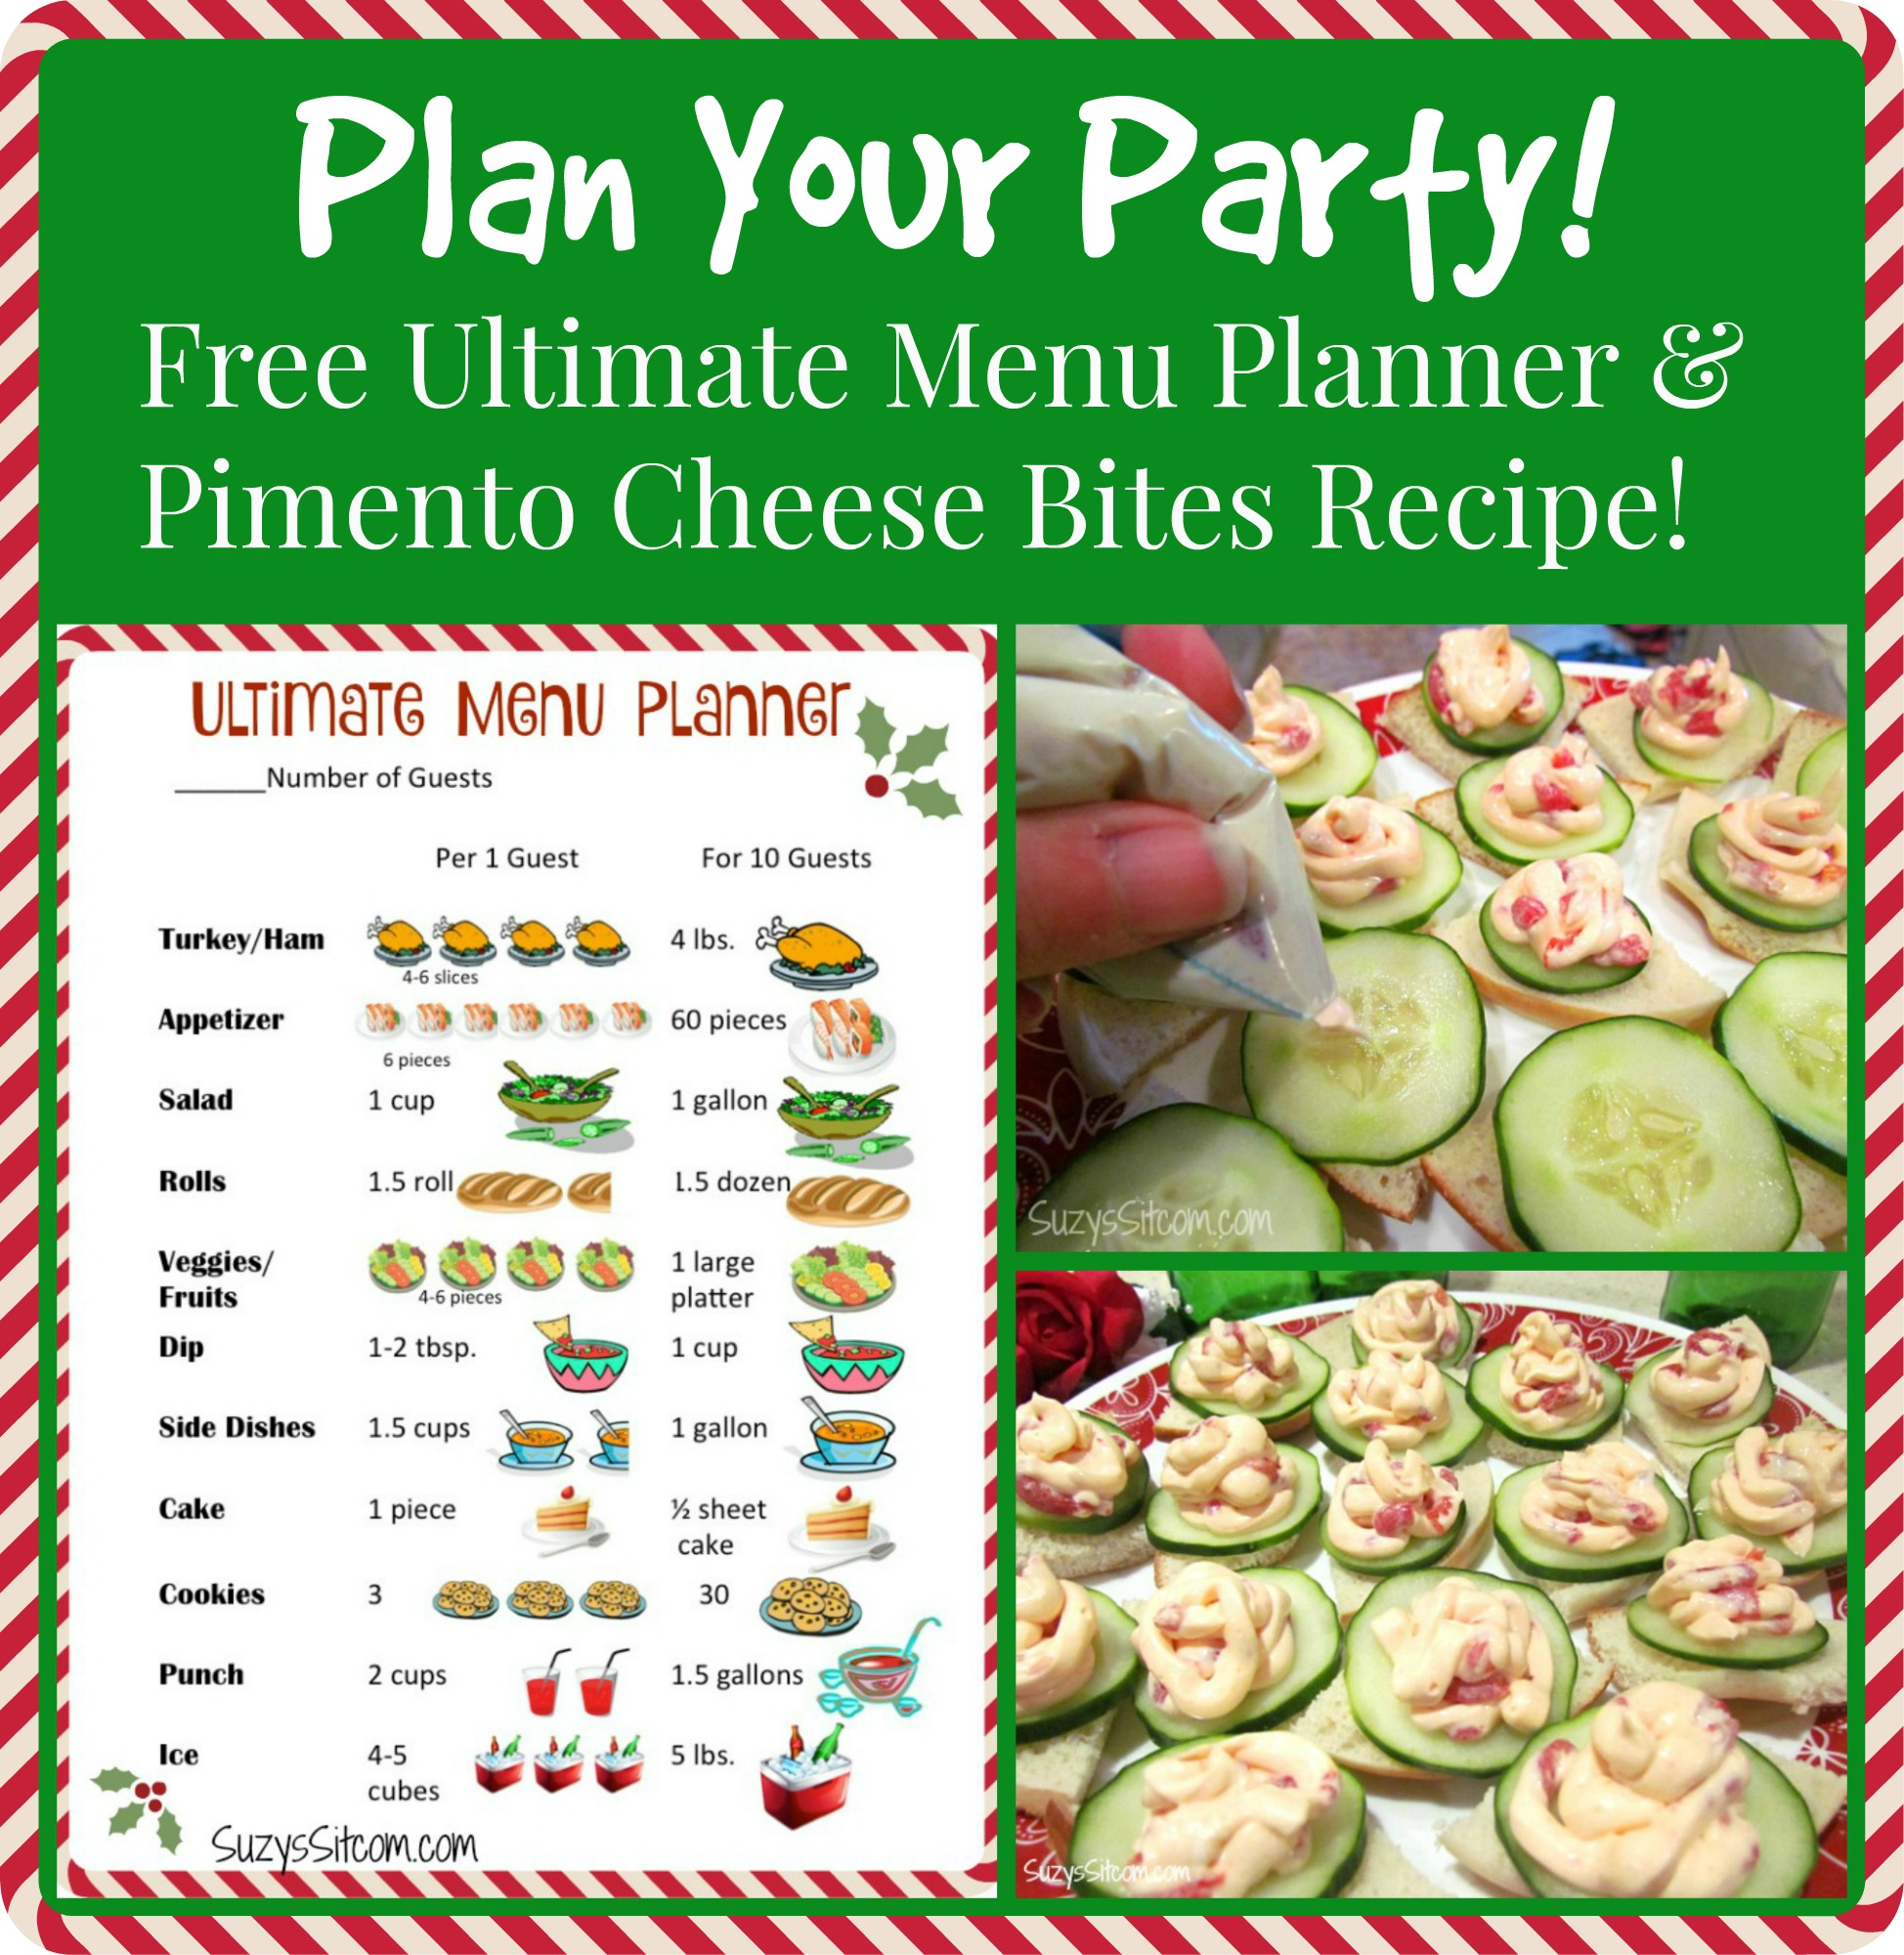 Plan your Party! Ultimate Menu Planner and Pimiento Cheese Bites ...